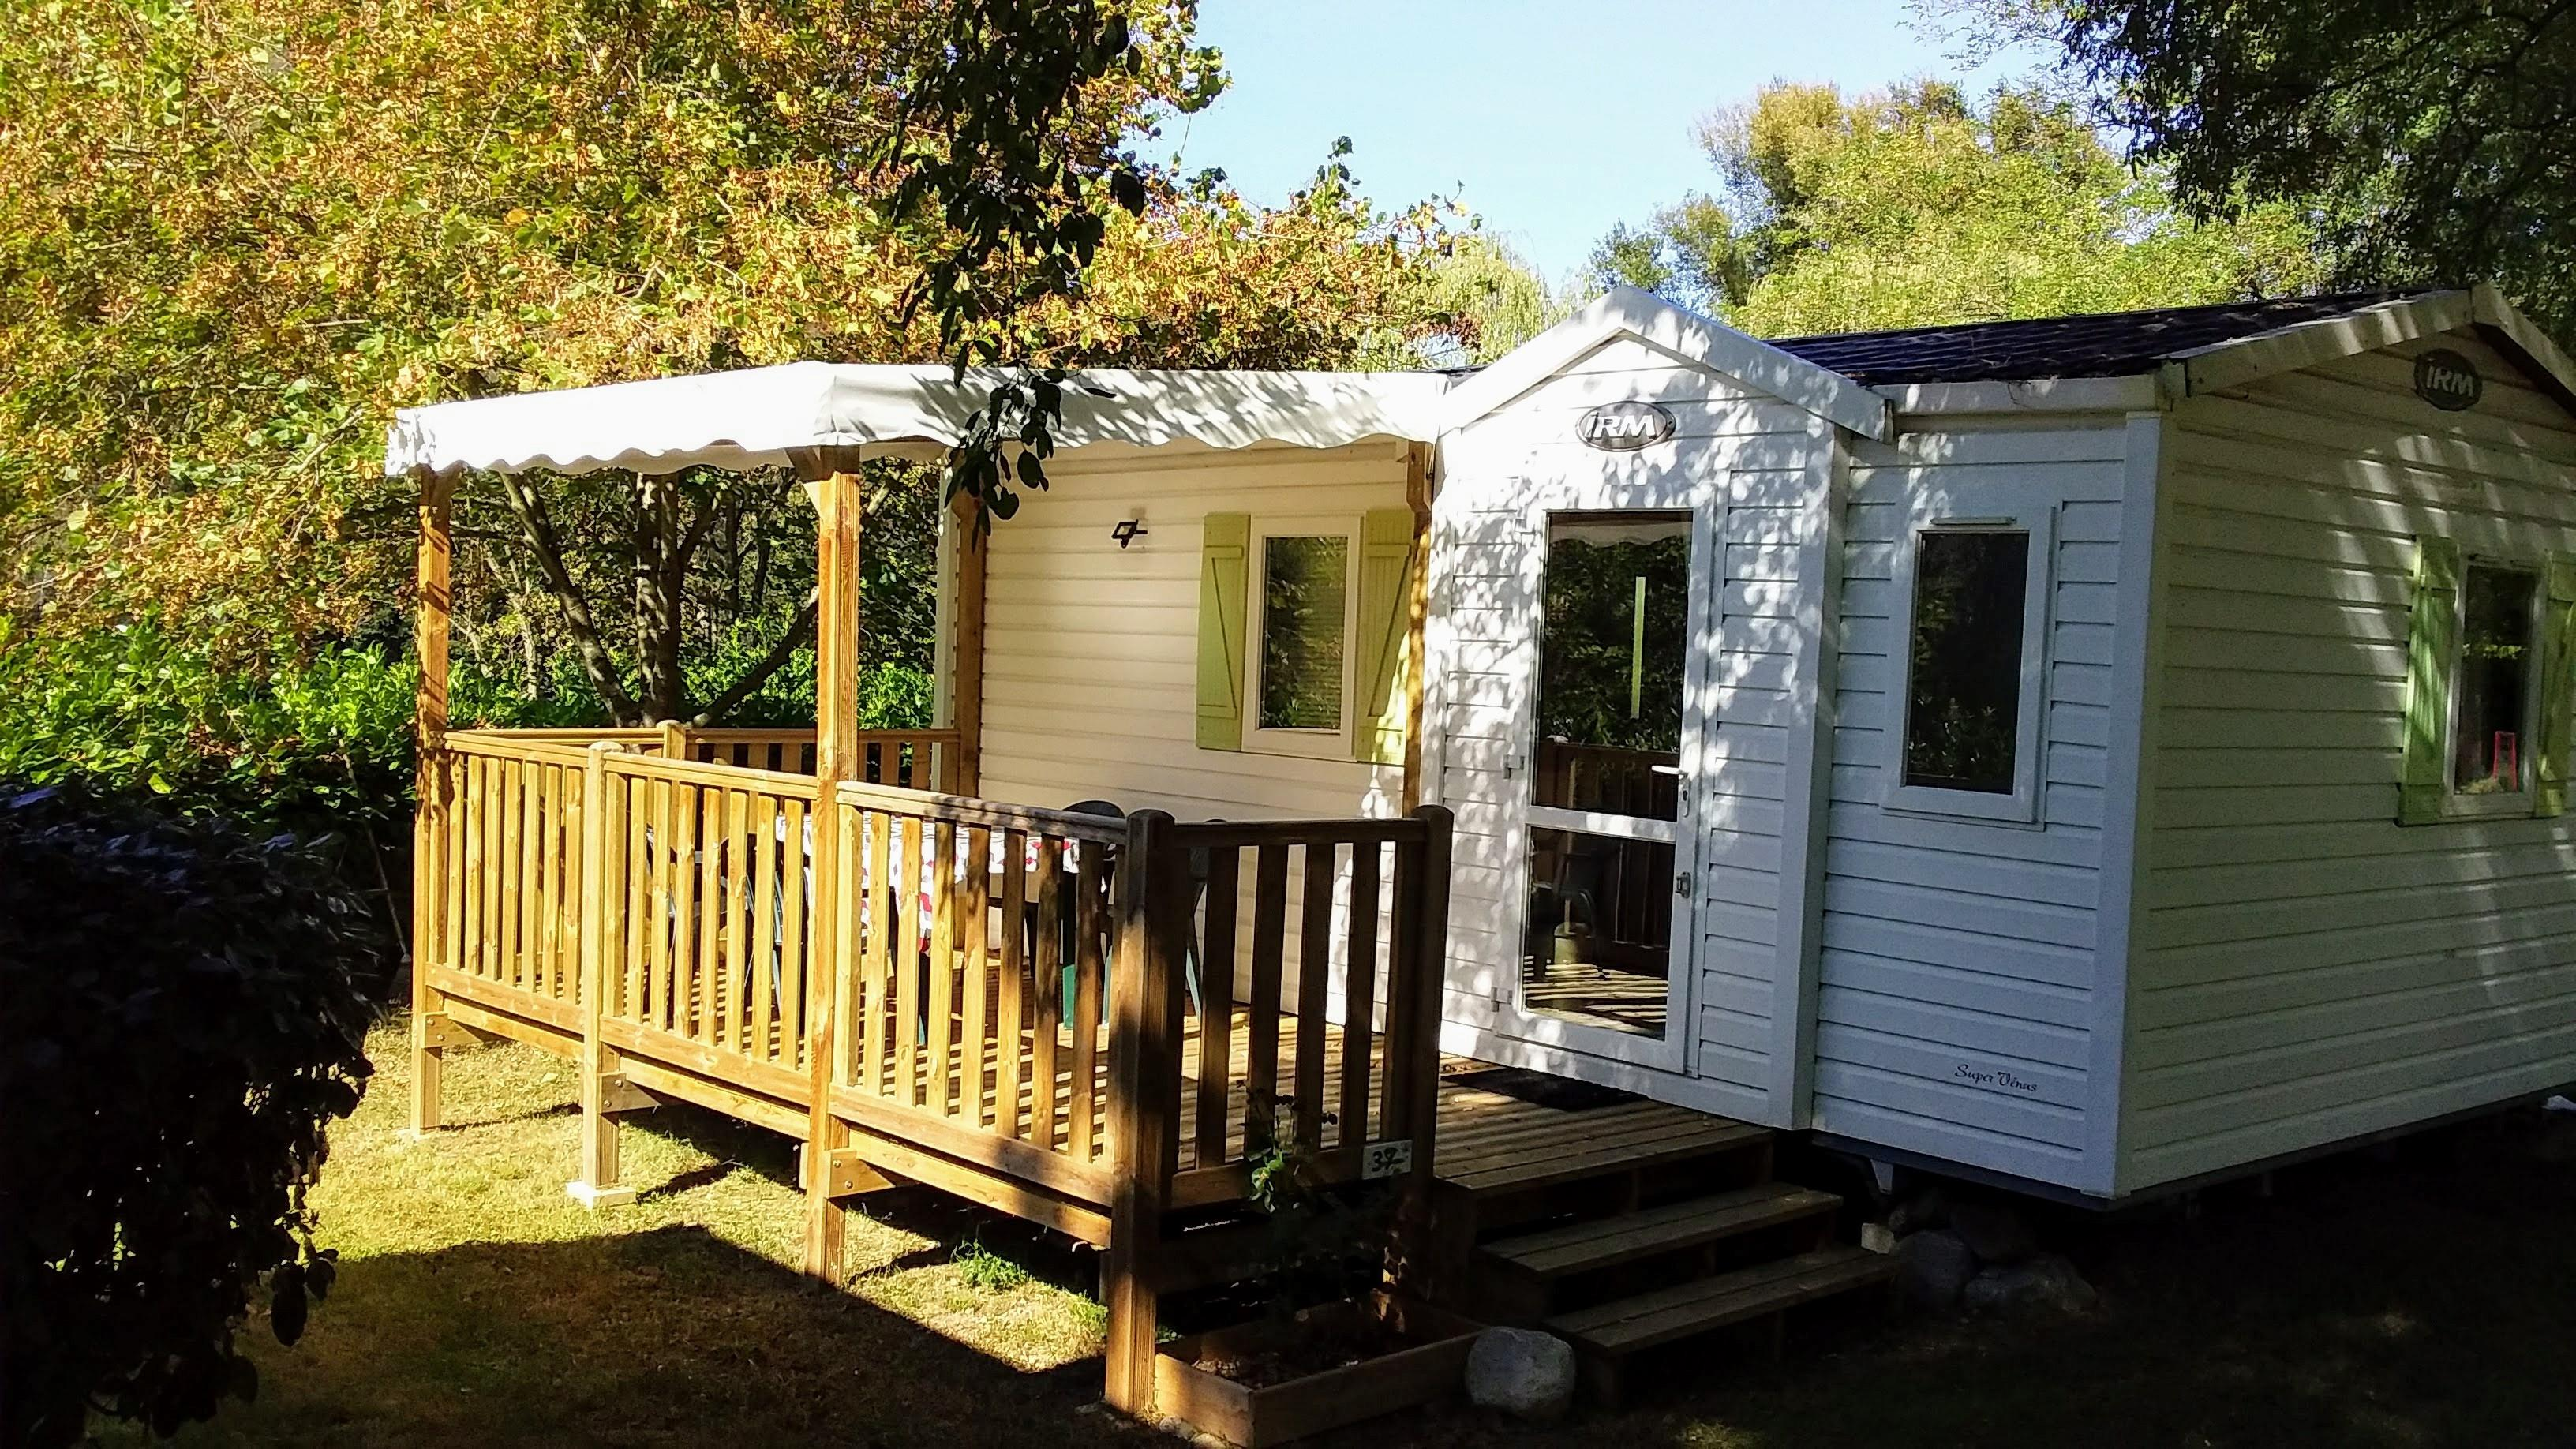 Accommodation - Mobile-Home 4 Confort 23 M² Half-Covered Terrace 12 M² - Camping du Lac Mercus